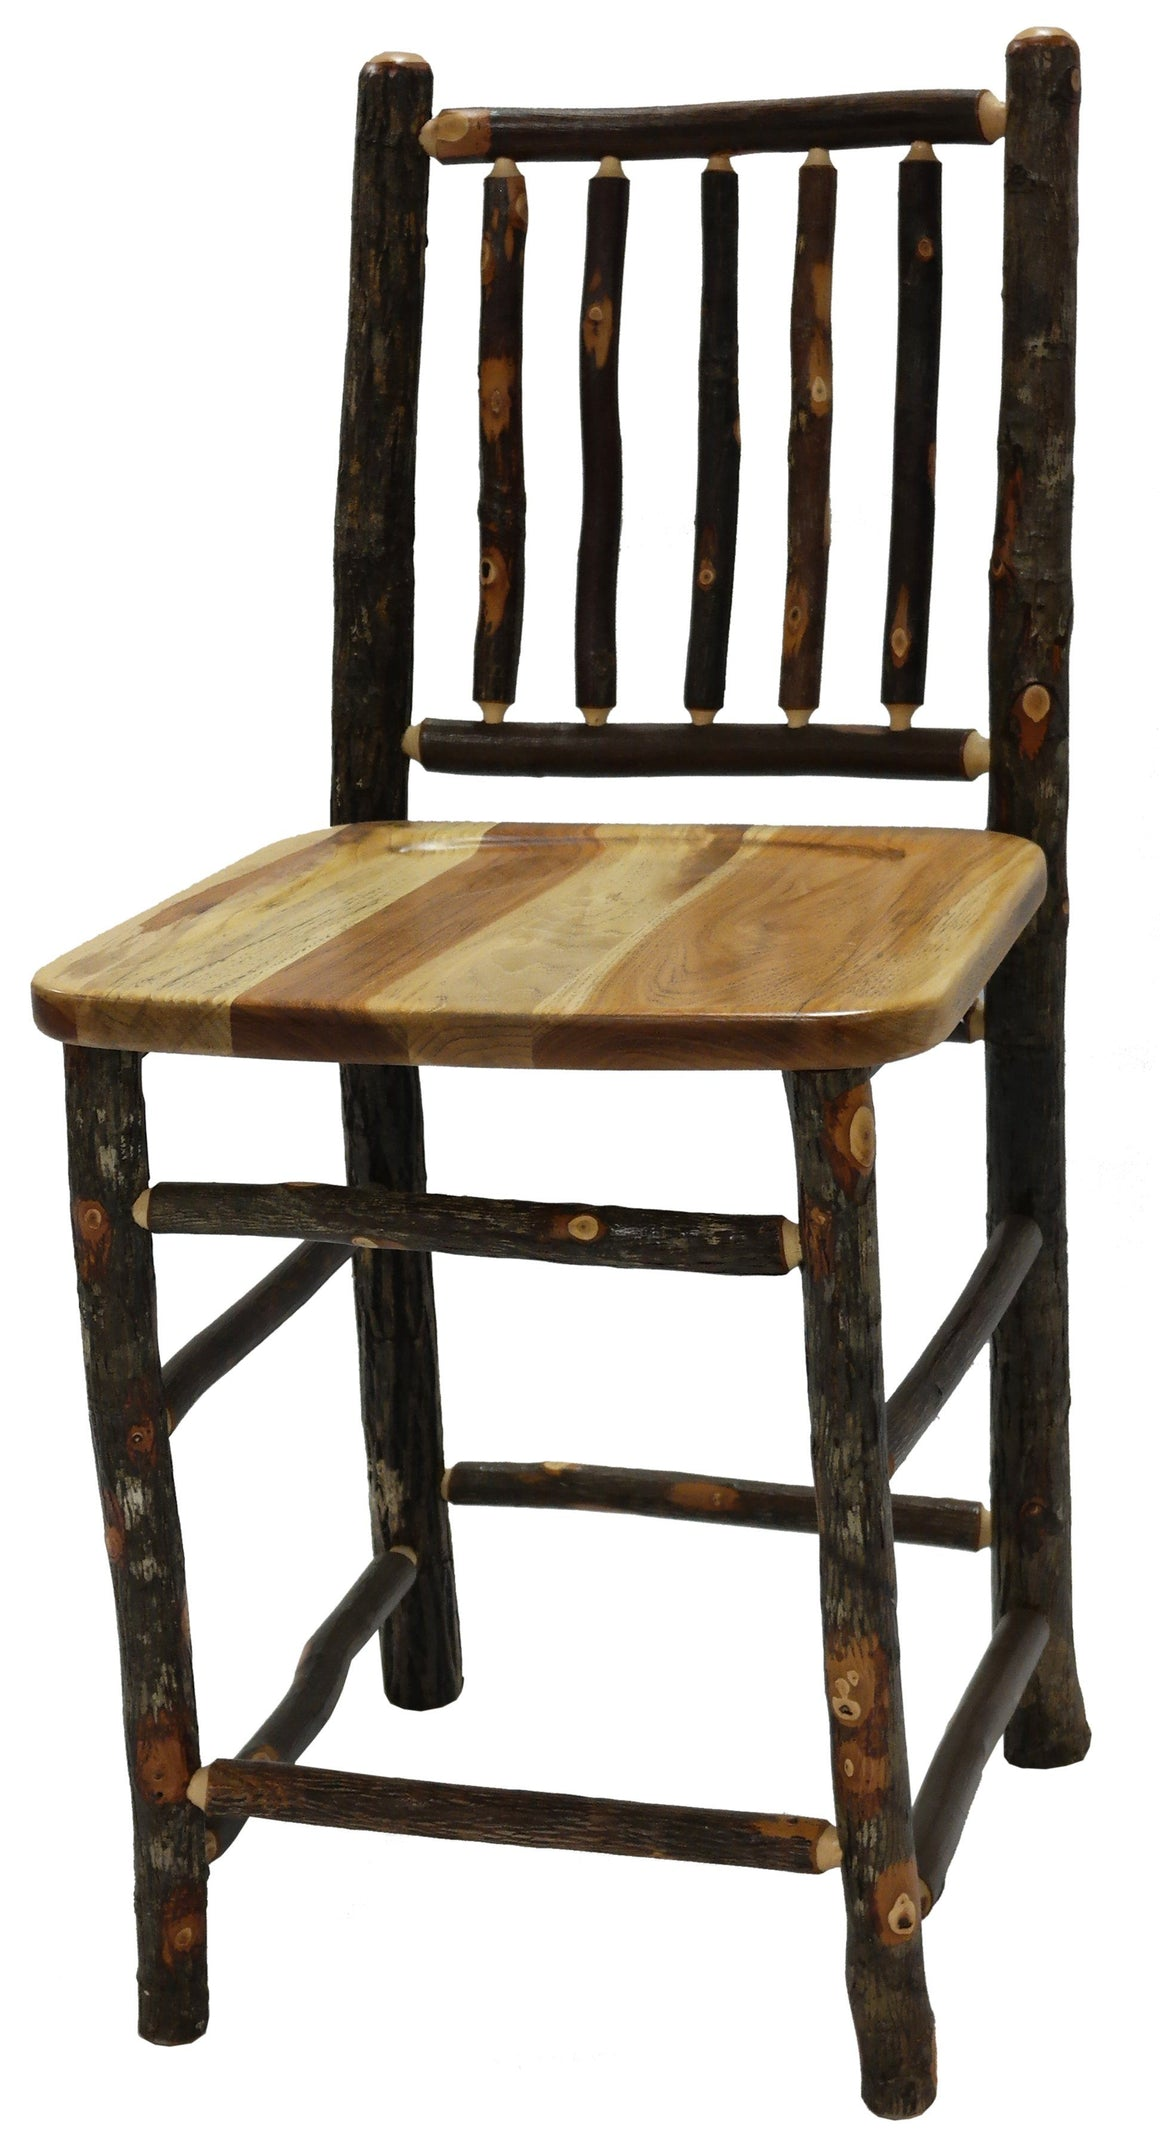 "Natural Hickory Log Counter Stool - 24"" high - Wood Seat - Standard Finish - Rustic Deco Incorporated"